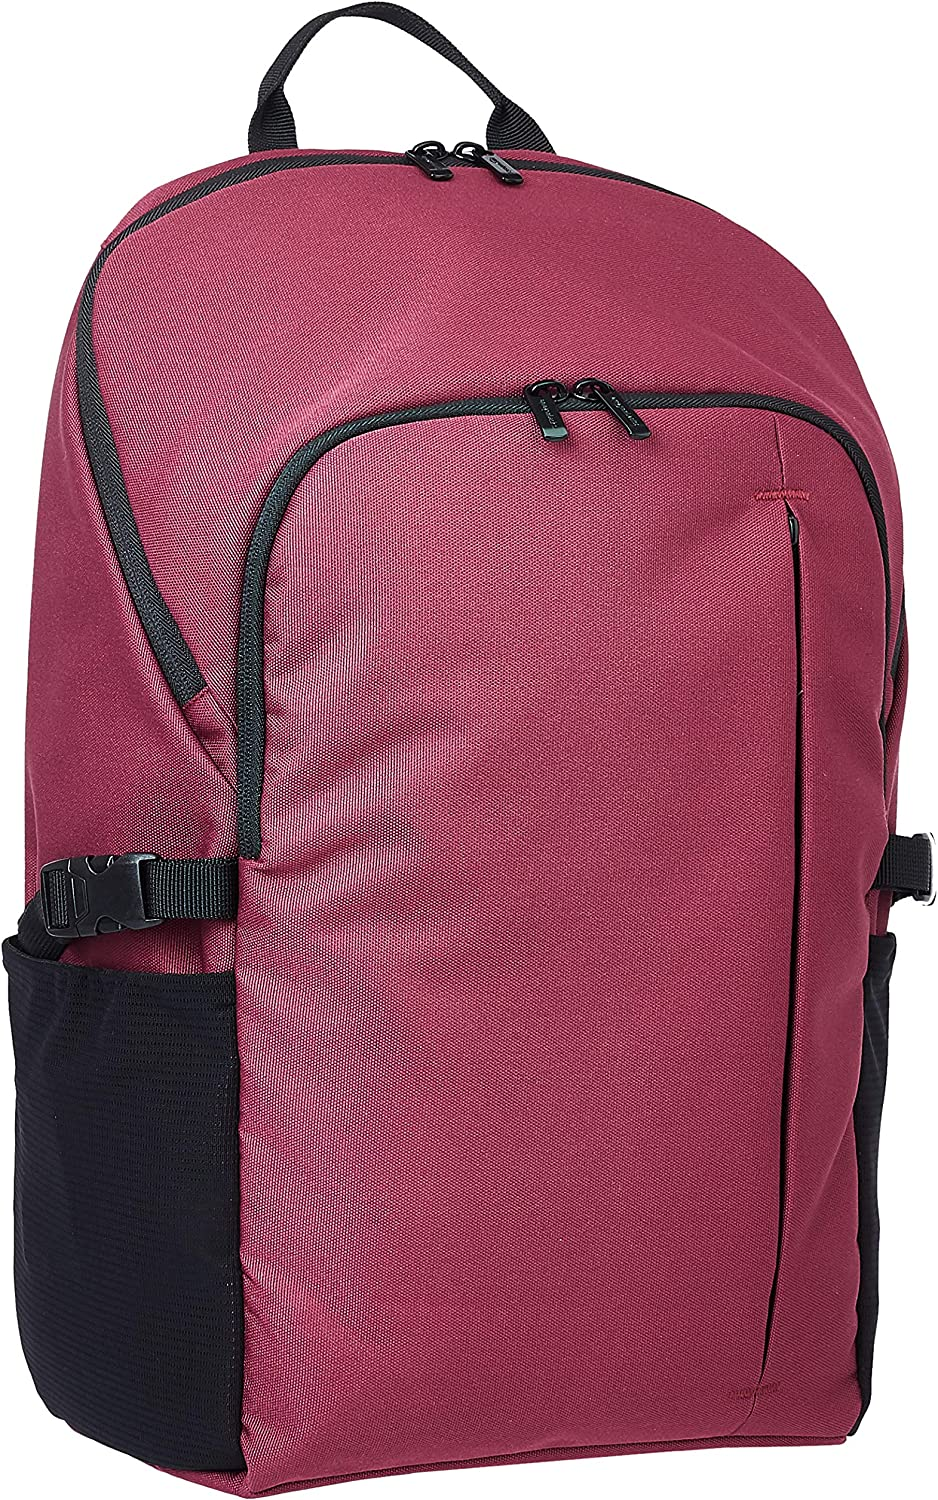 AmazonBasics Campus Backpack for Laptops up to 15-Inches - Maroon